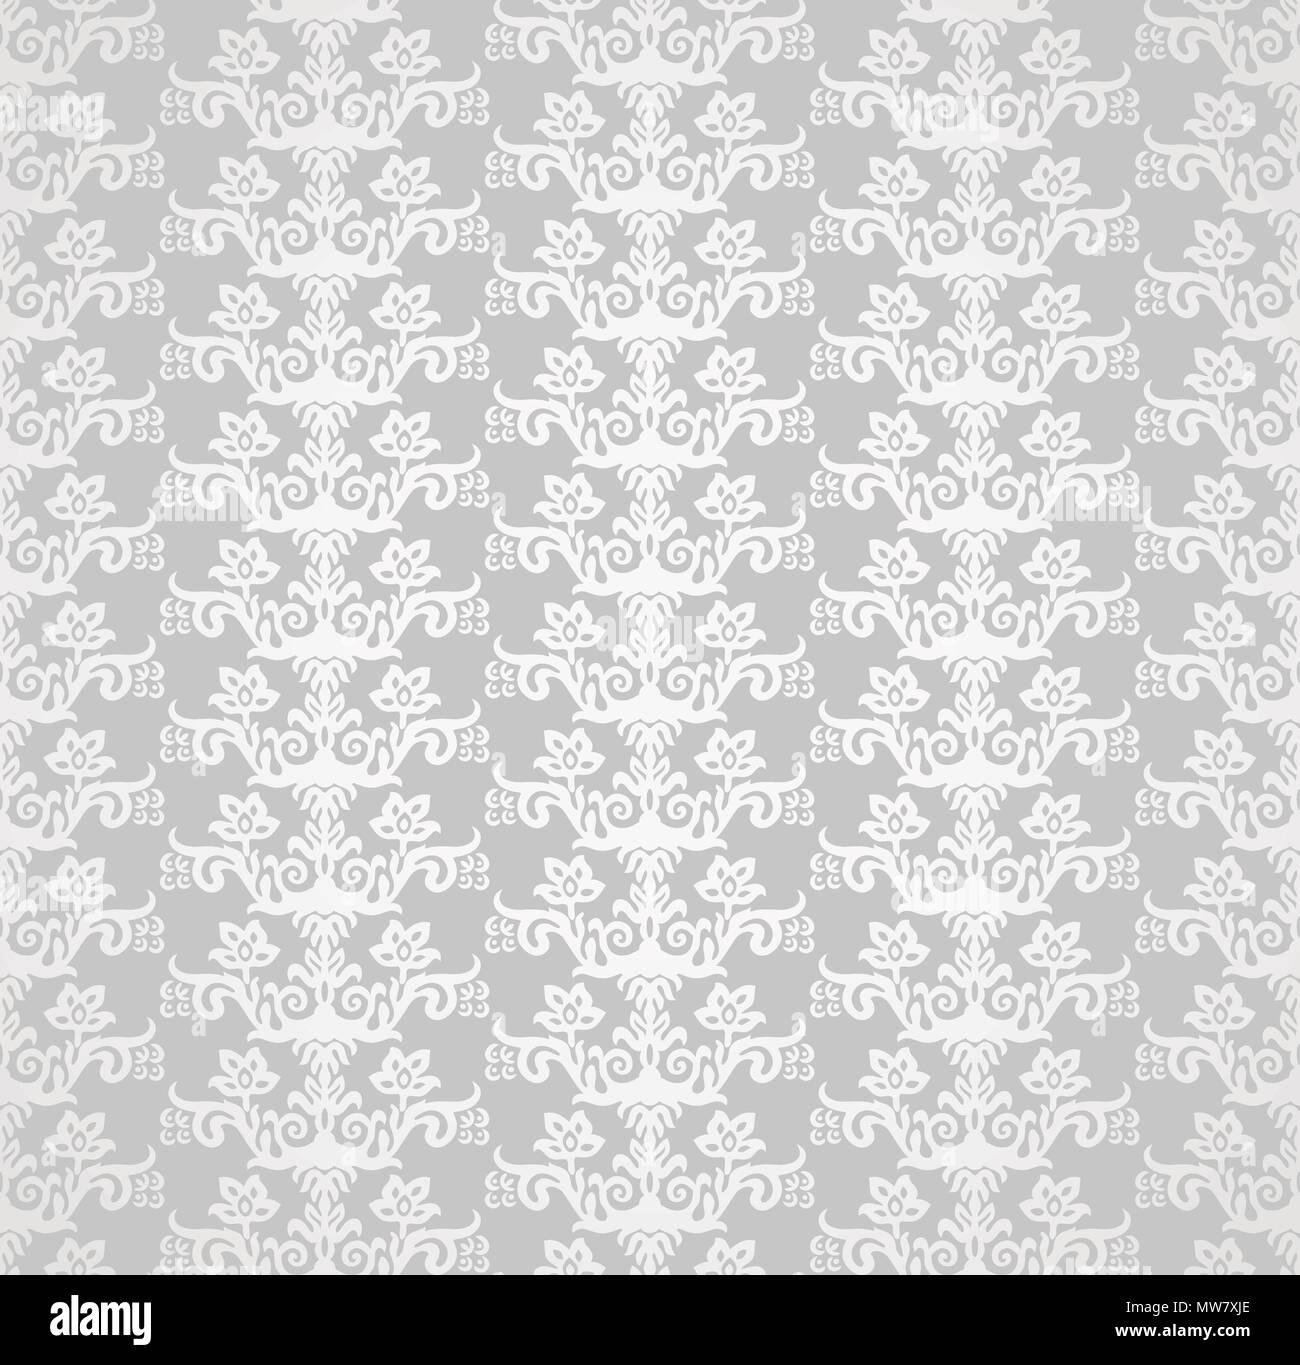 Silver seamless victorian style floral wallpaper pattern. This image is a vector illustration. - Stock Image